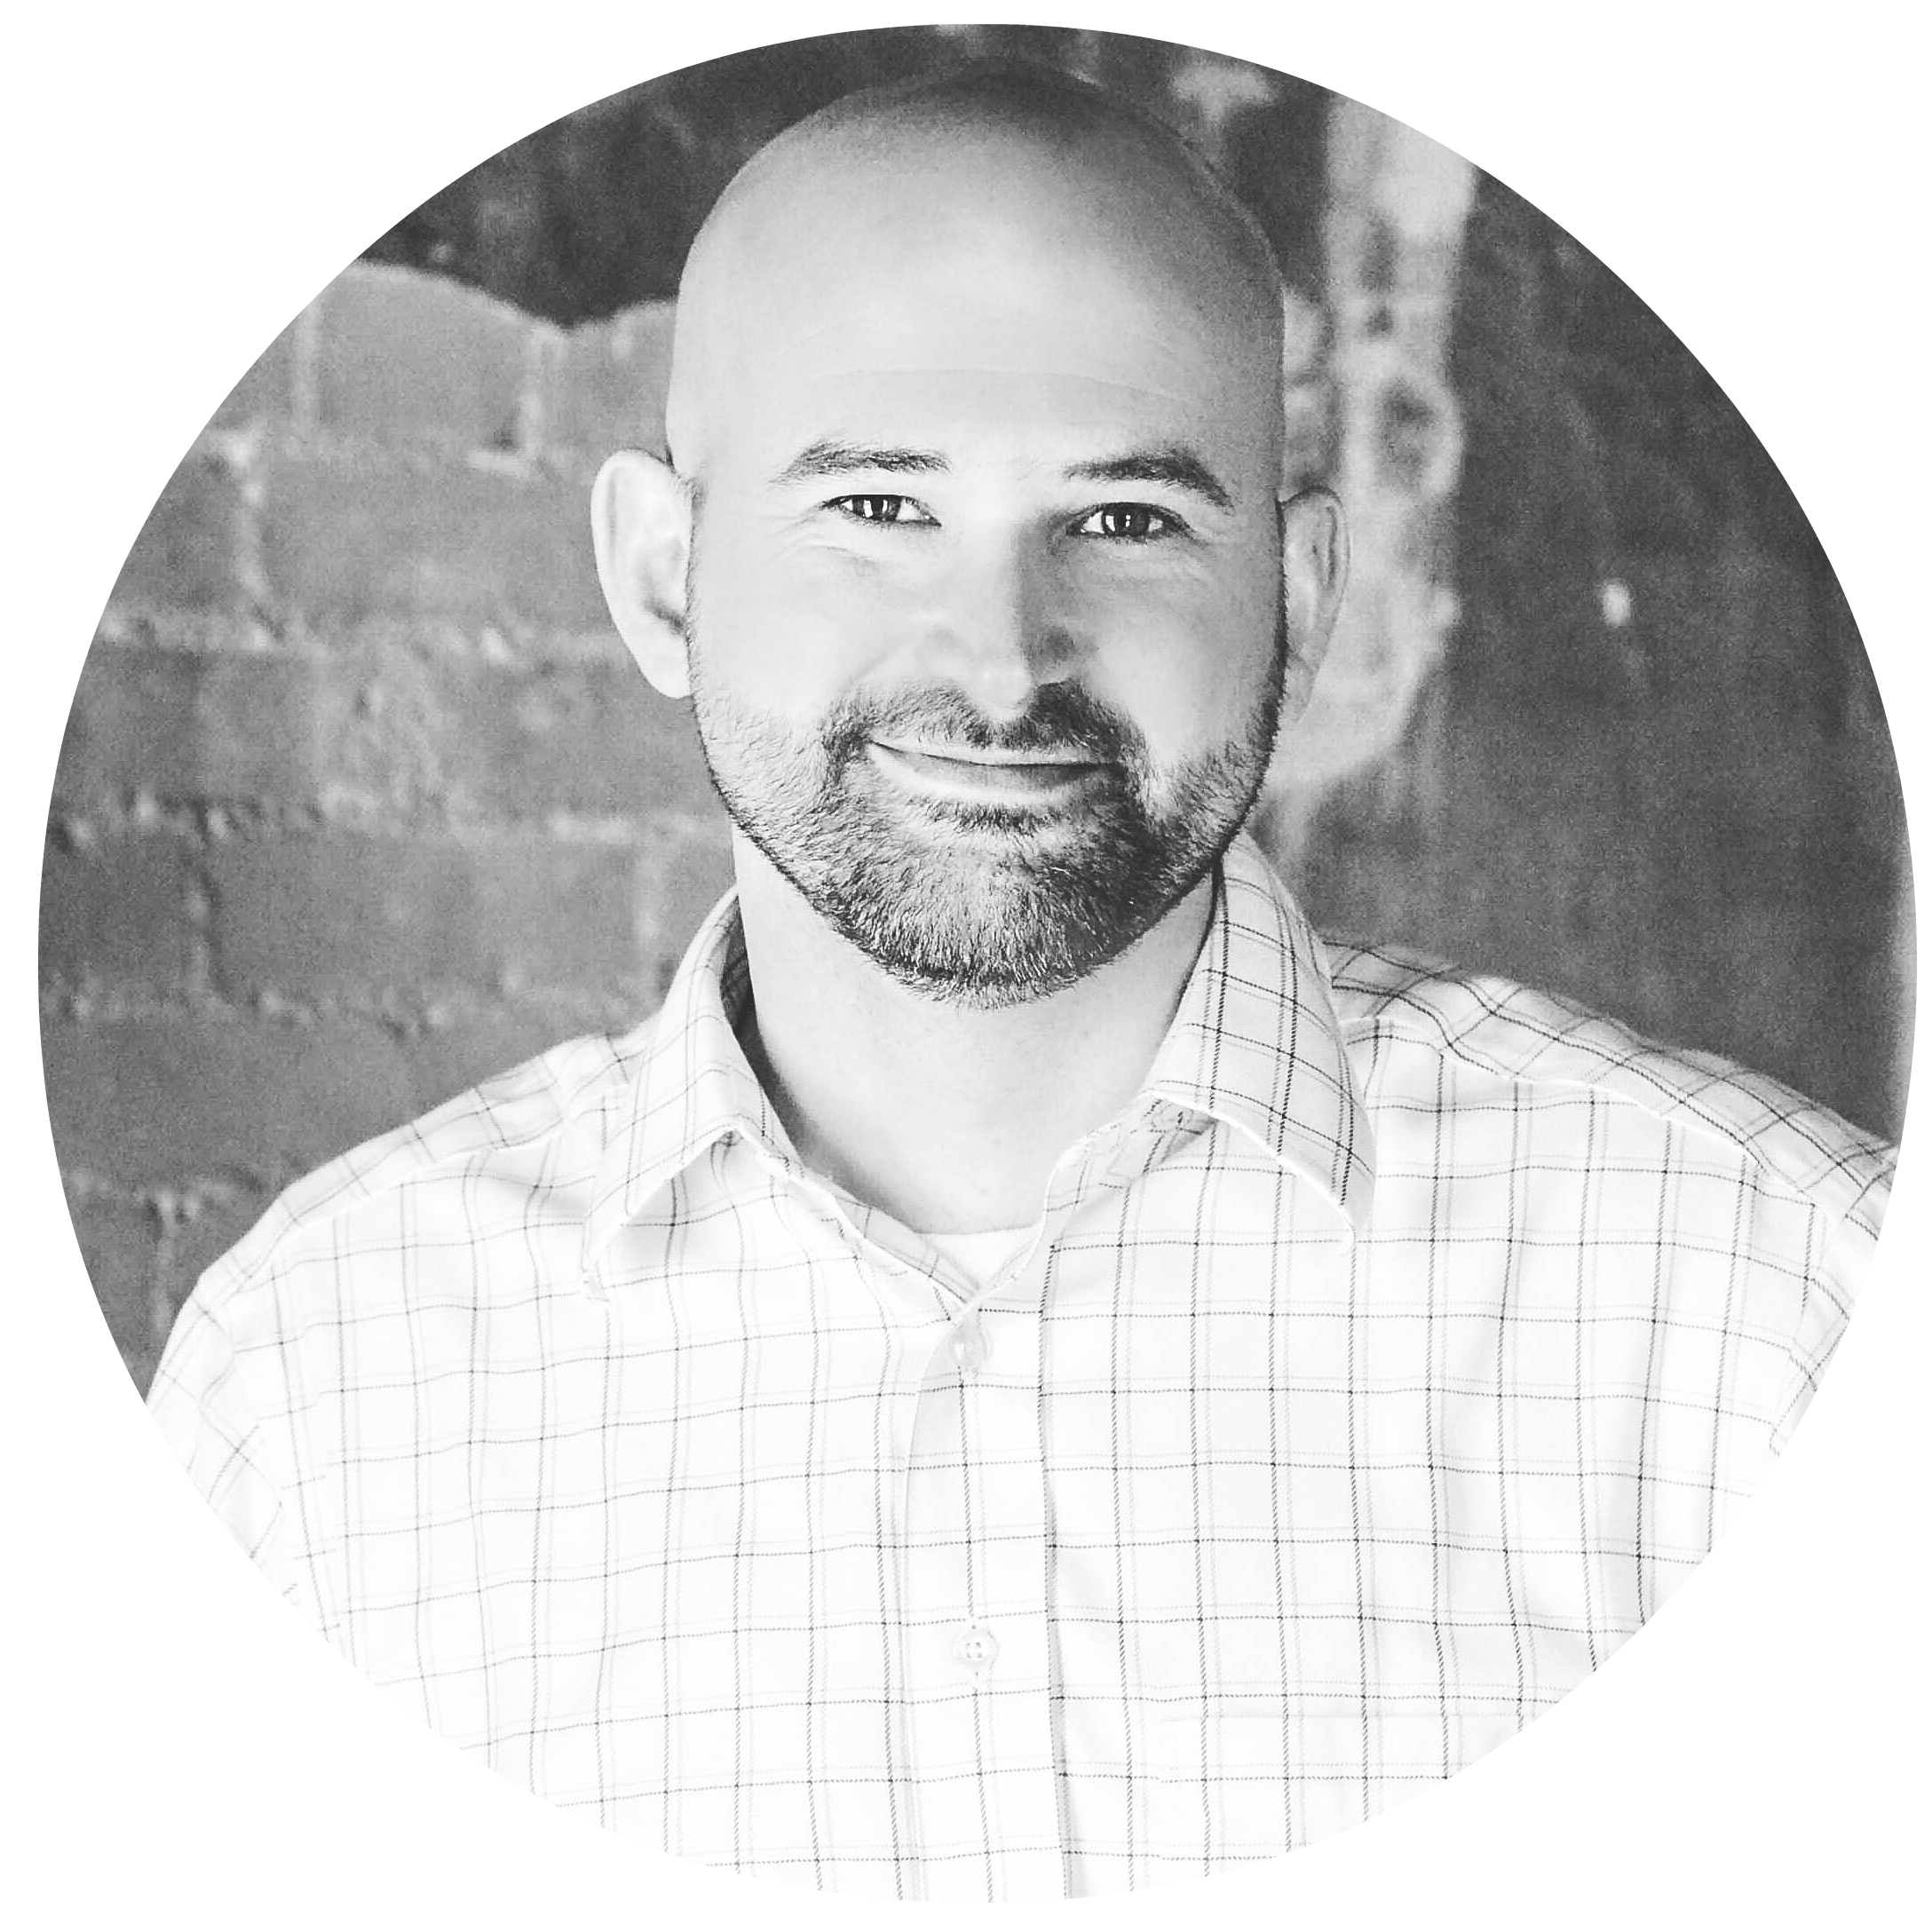 Jeff White - I am a founding partner at The Wheelhouse Group where I am the primary talker. I like people and solving their problems. I've been in marketing all of my career and have worked with hundreds of nationally recognized clients. I enjoy coming up with ideas that make clients successful and help them achieve their goals.